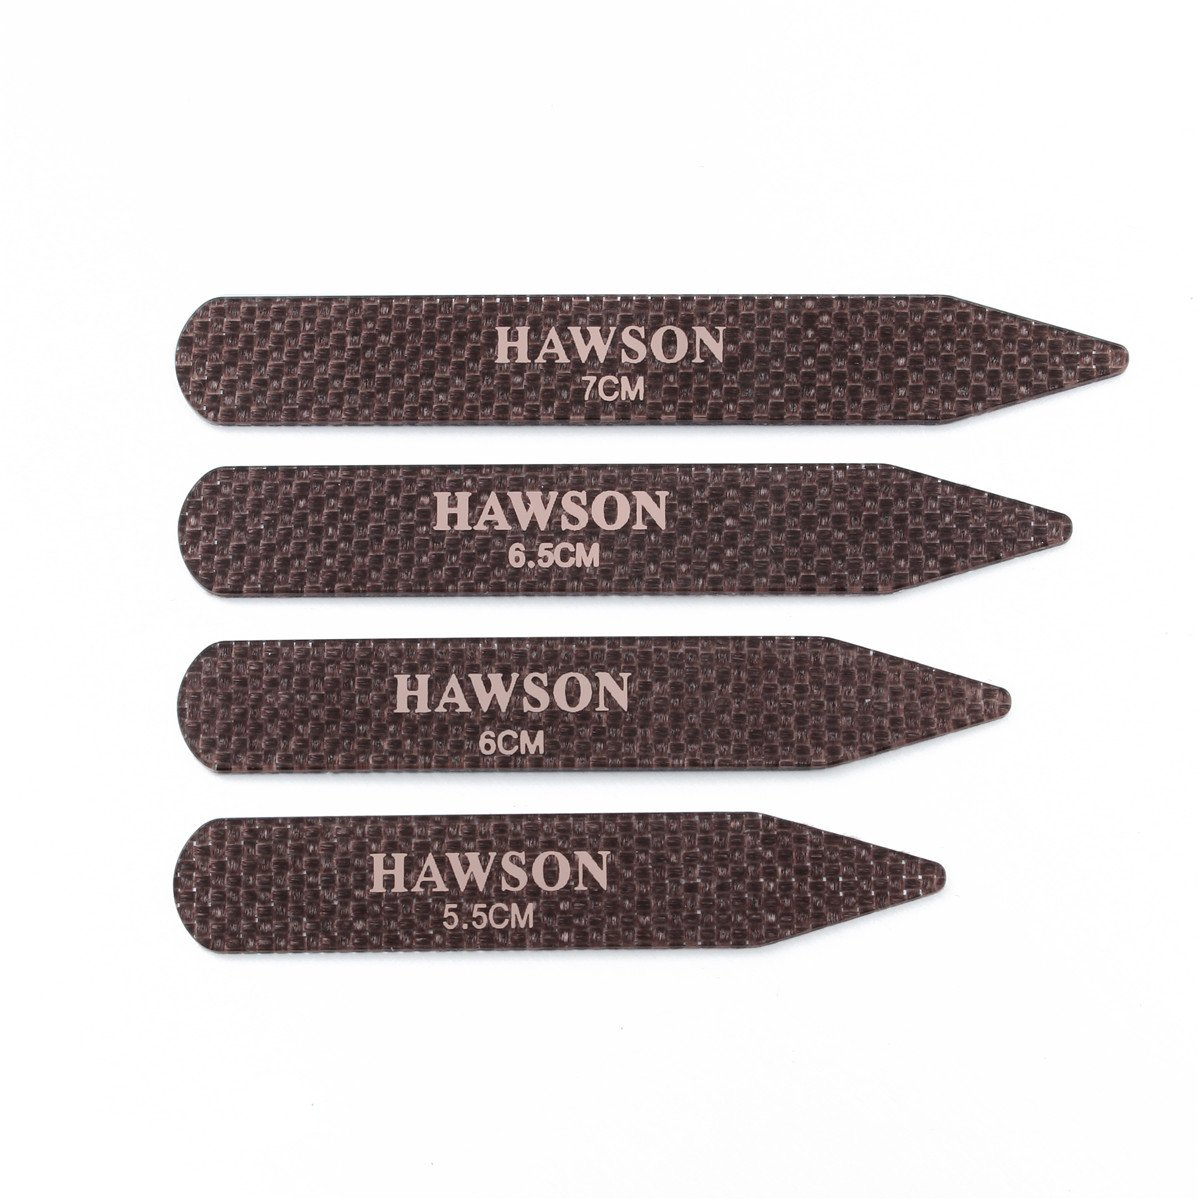 HAWSON Carbon Fiber Collar Stays Clips For Man Shirt accessories 4 Sizes (Brown)